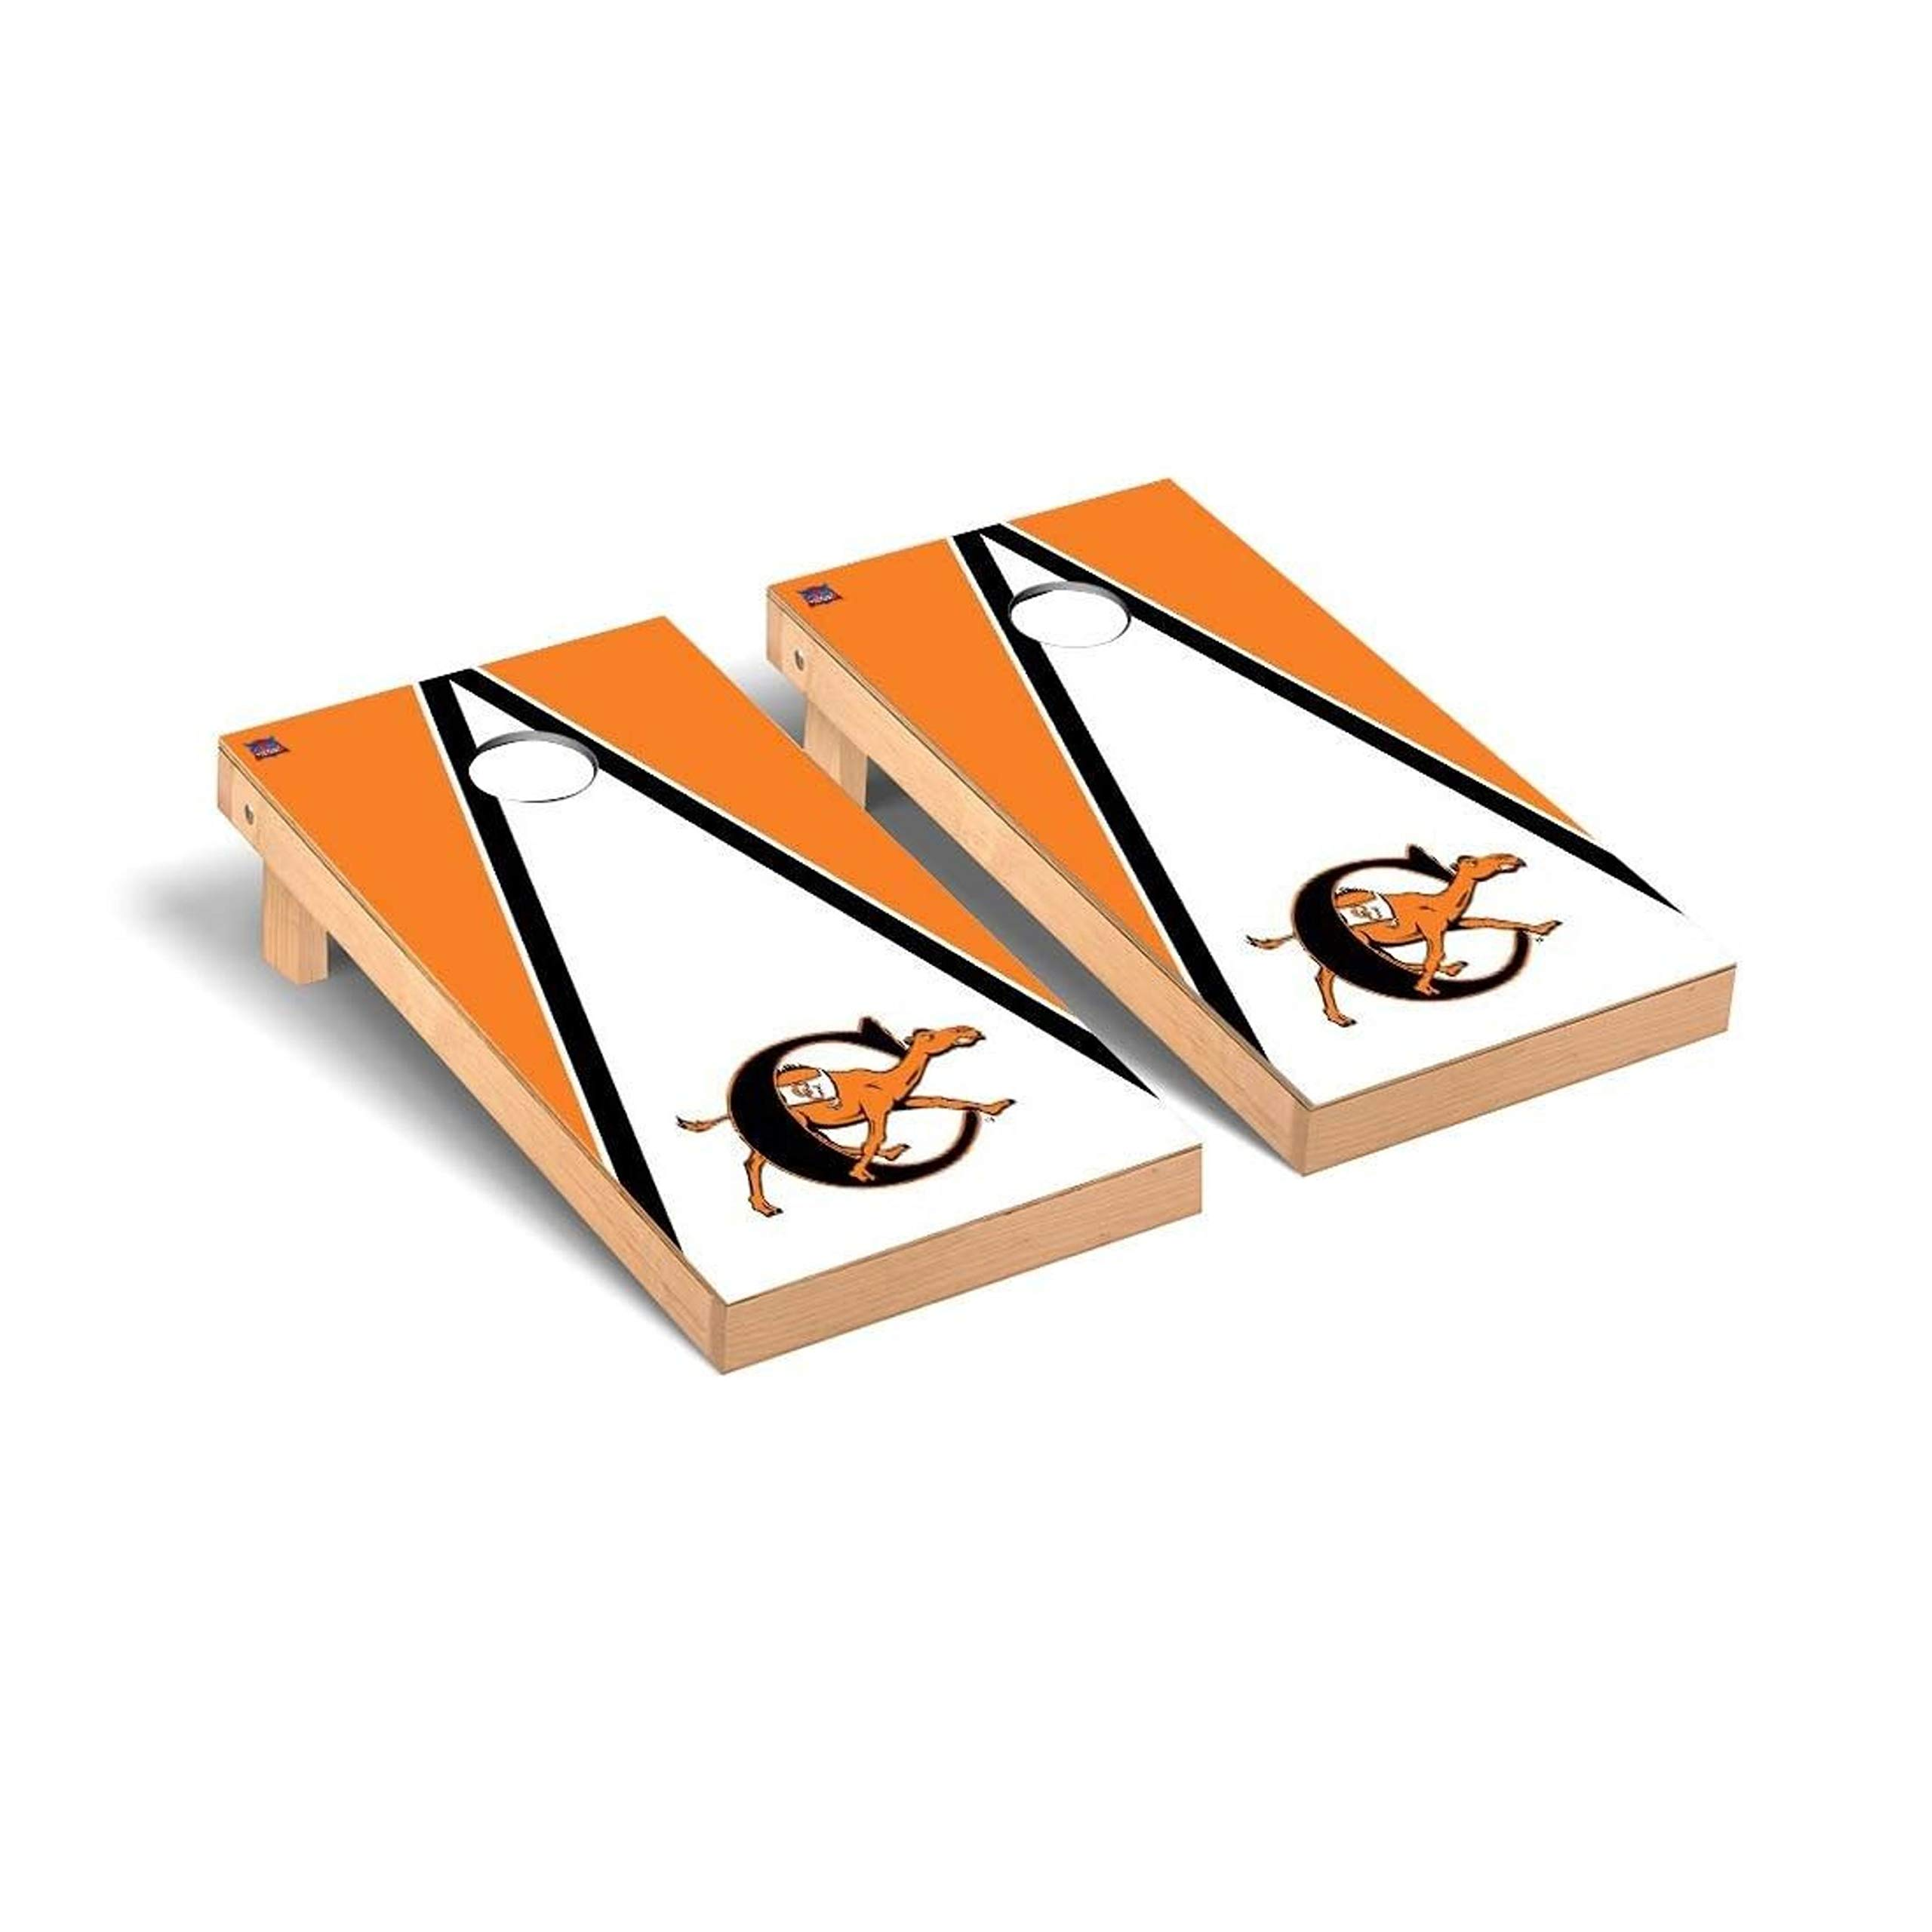 Victory Tailgate Regulation Collegiate NCAA Triangle Series Cornhole Board Set - 2 Boards, 8 Bags - Campbell Fighting Camels by Victory Tailgate